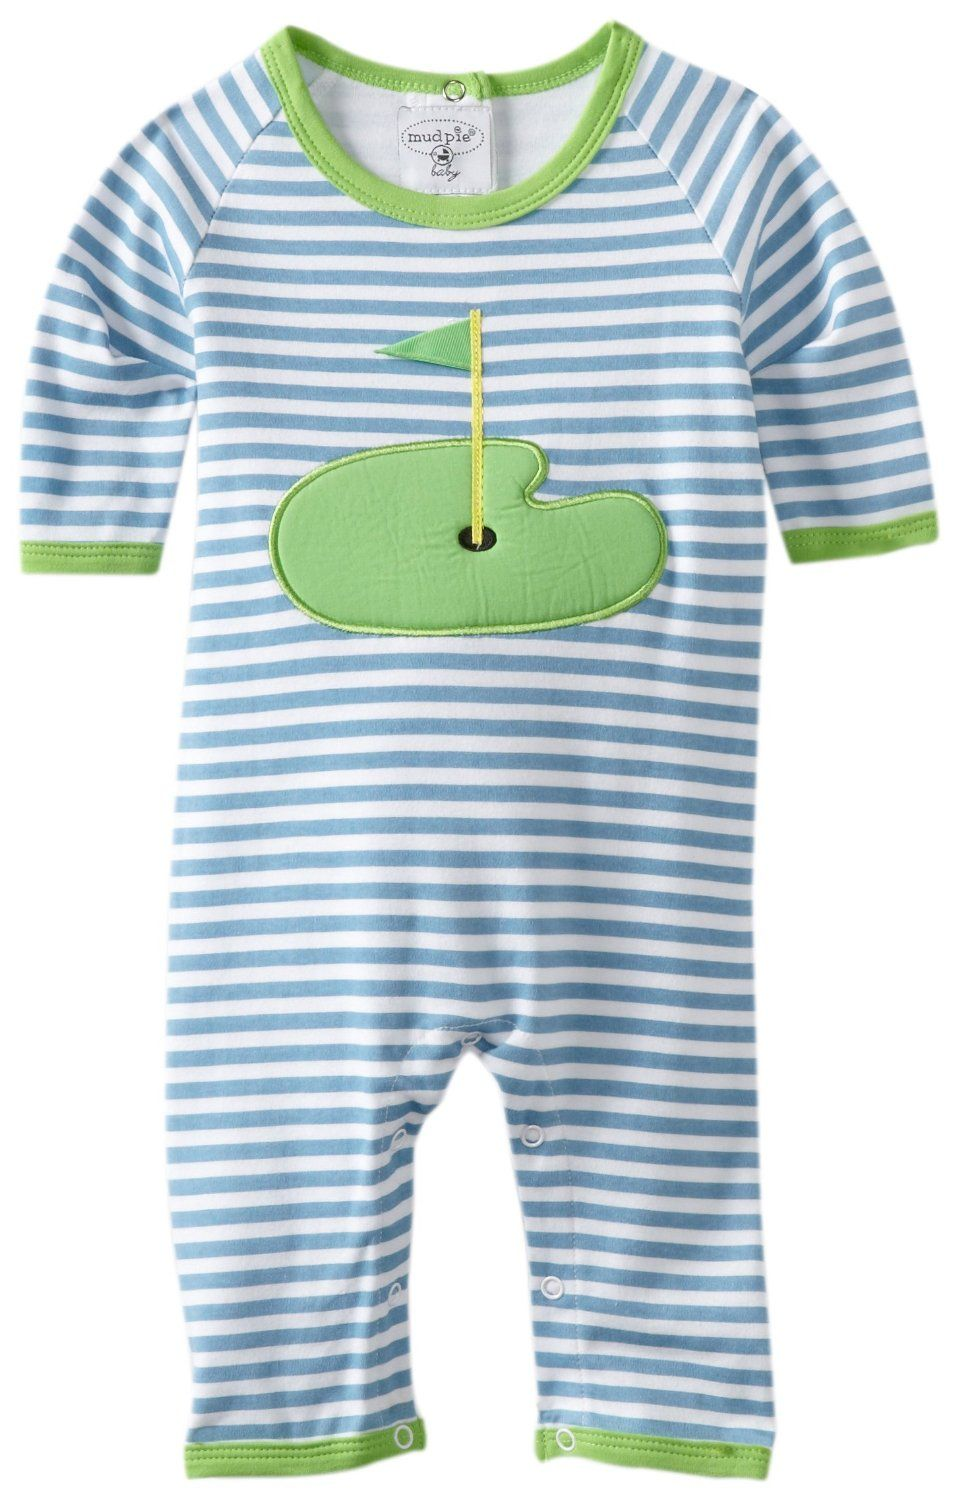 28c50718a386 Baby Golf Clothes - Boys Golf Sleeper Newborn.... For the golf pro's kid  haha